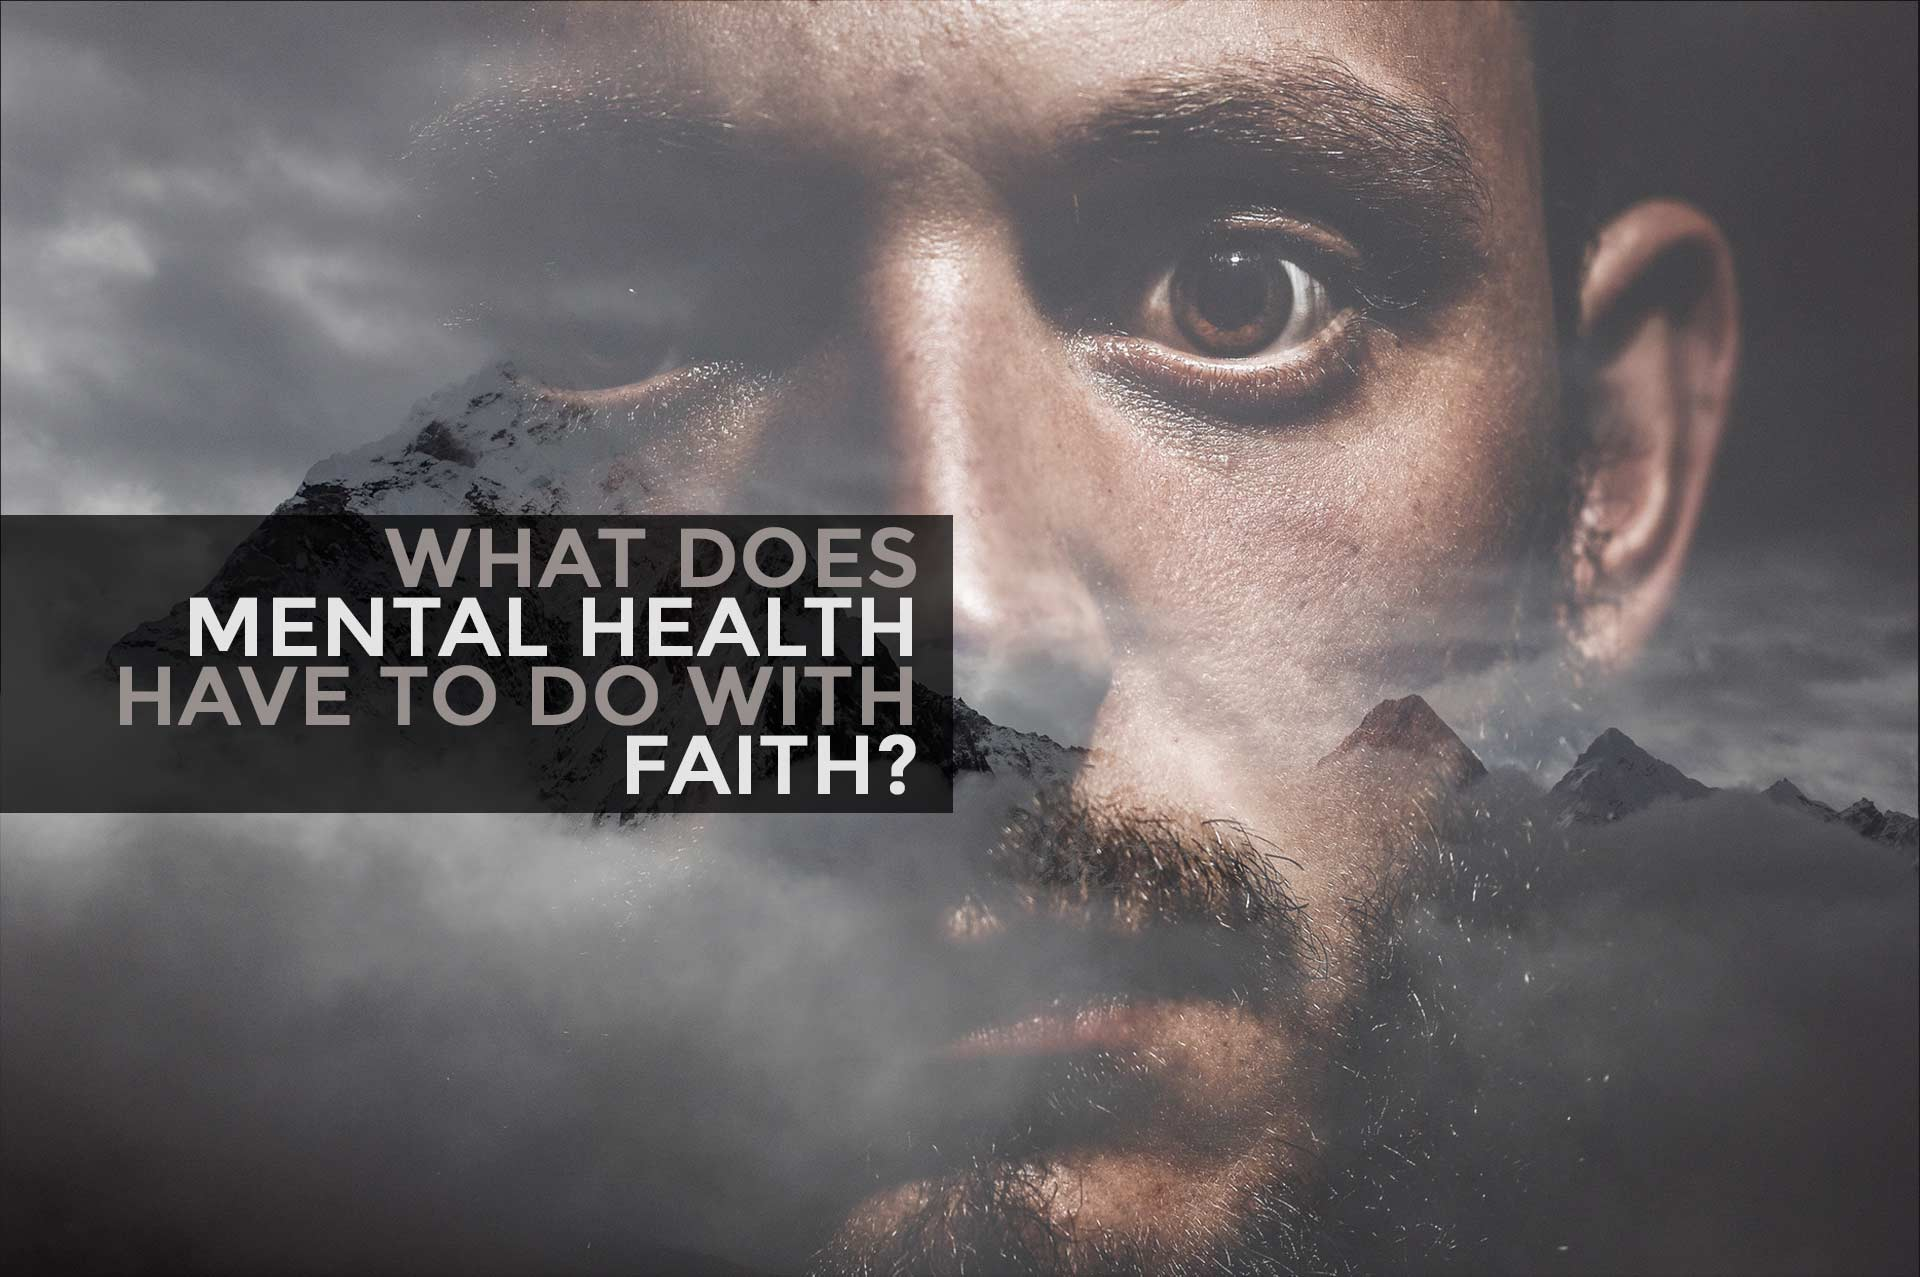 faith and mental health